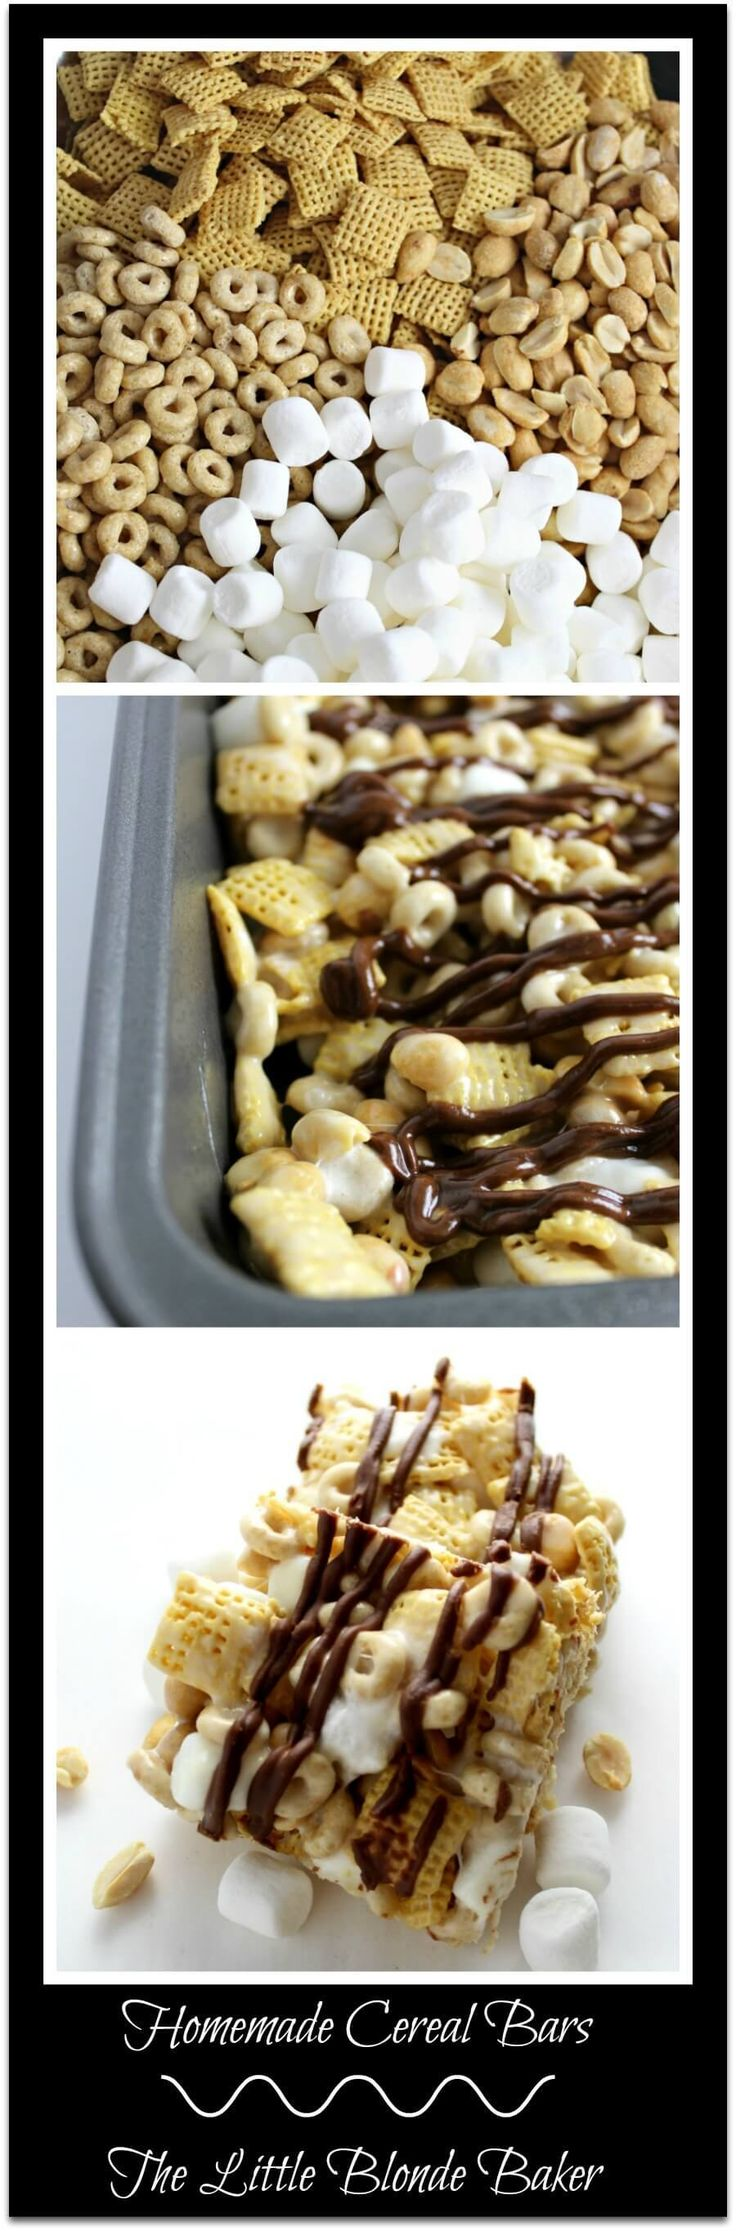 Homemade Cereal Bars, a step up from rice crispy treats. A great combo of sweet and salty.